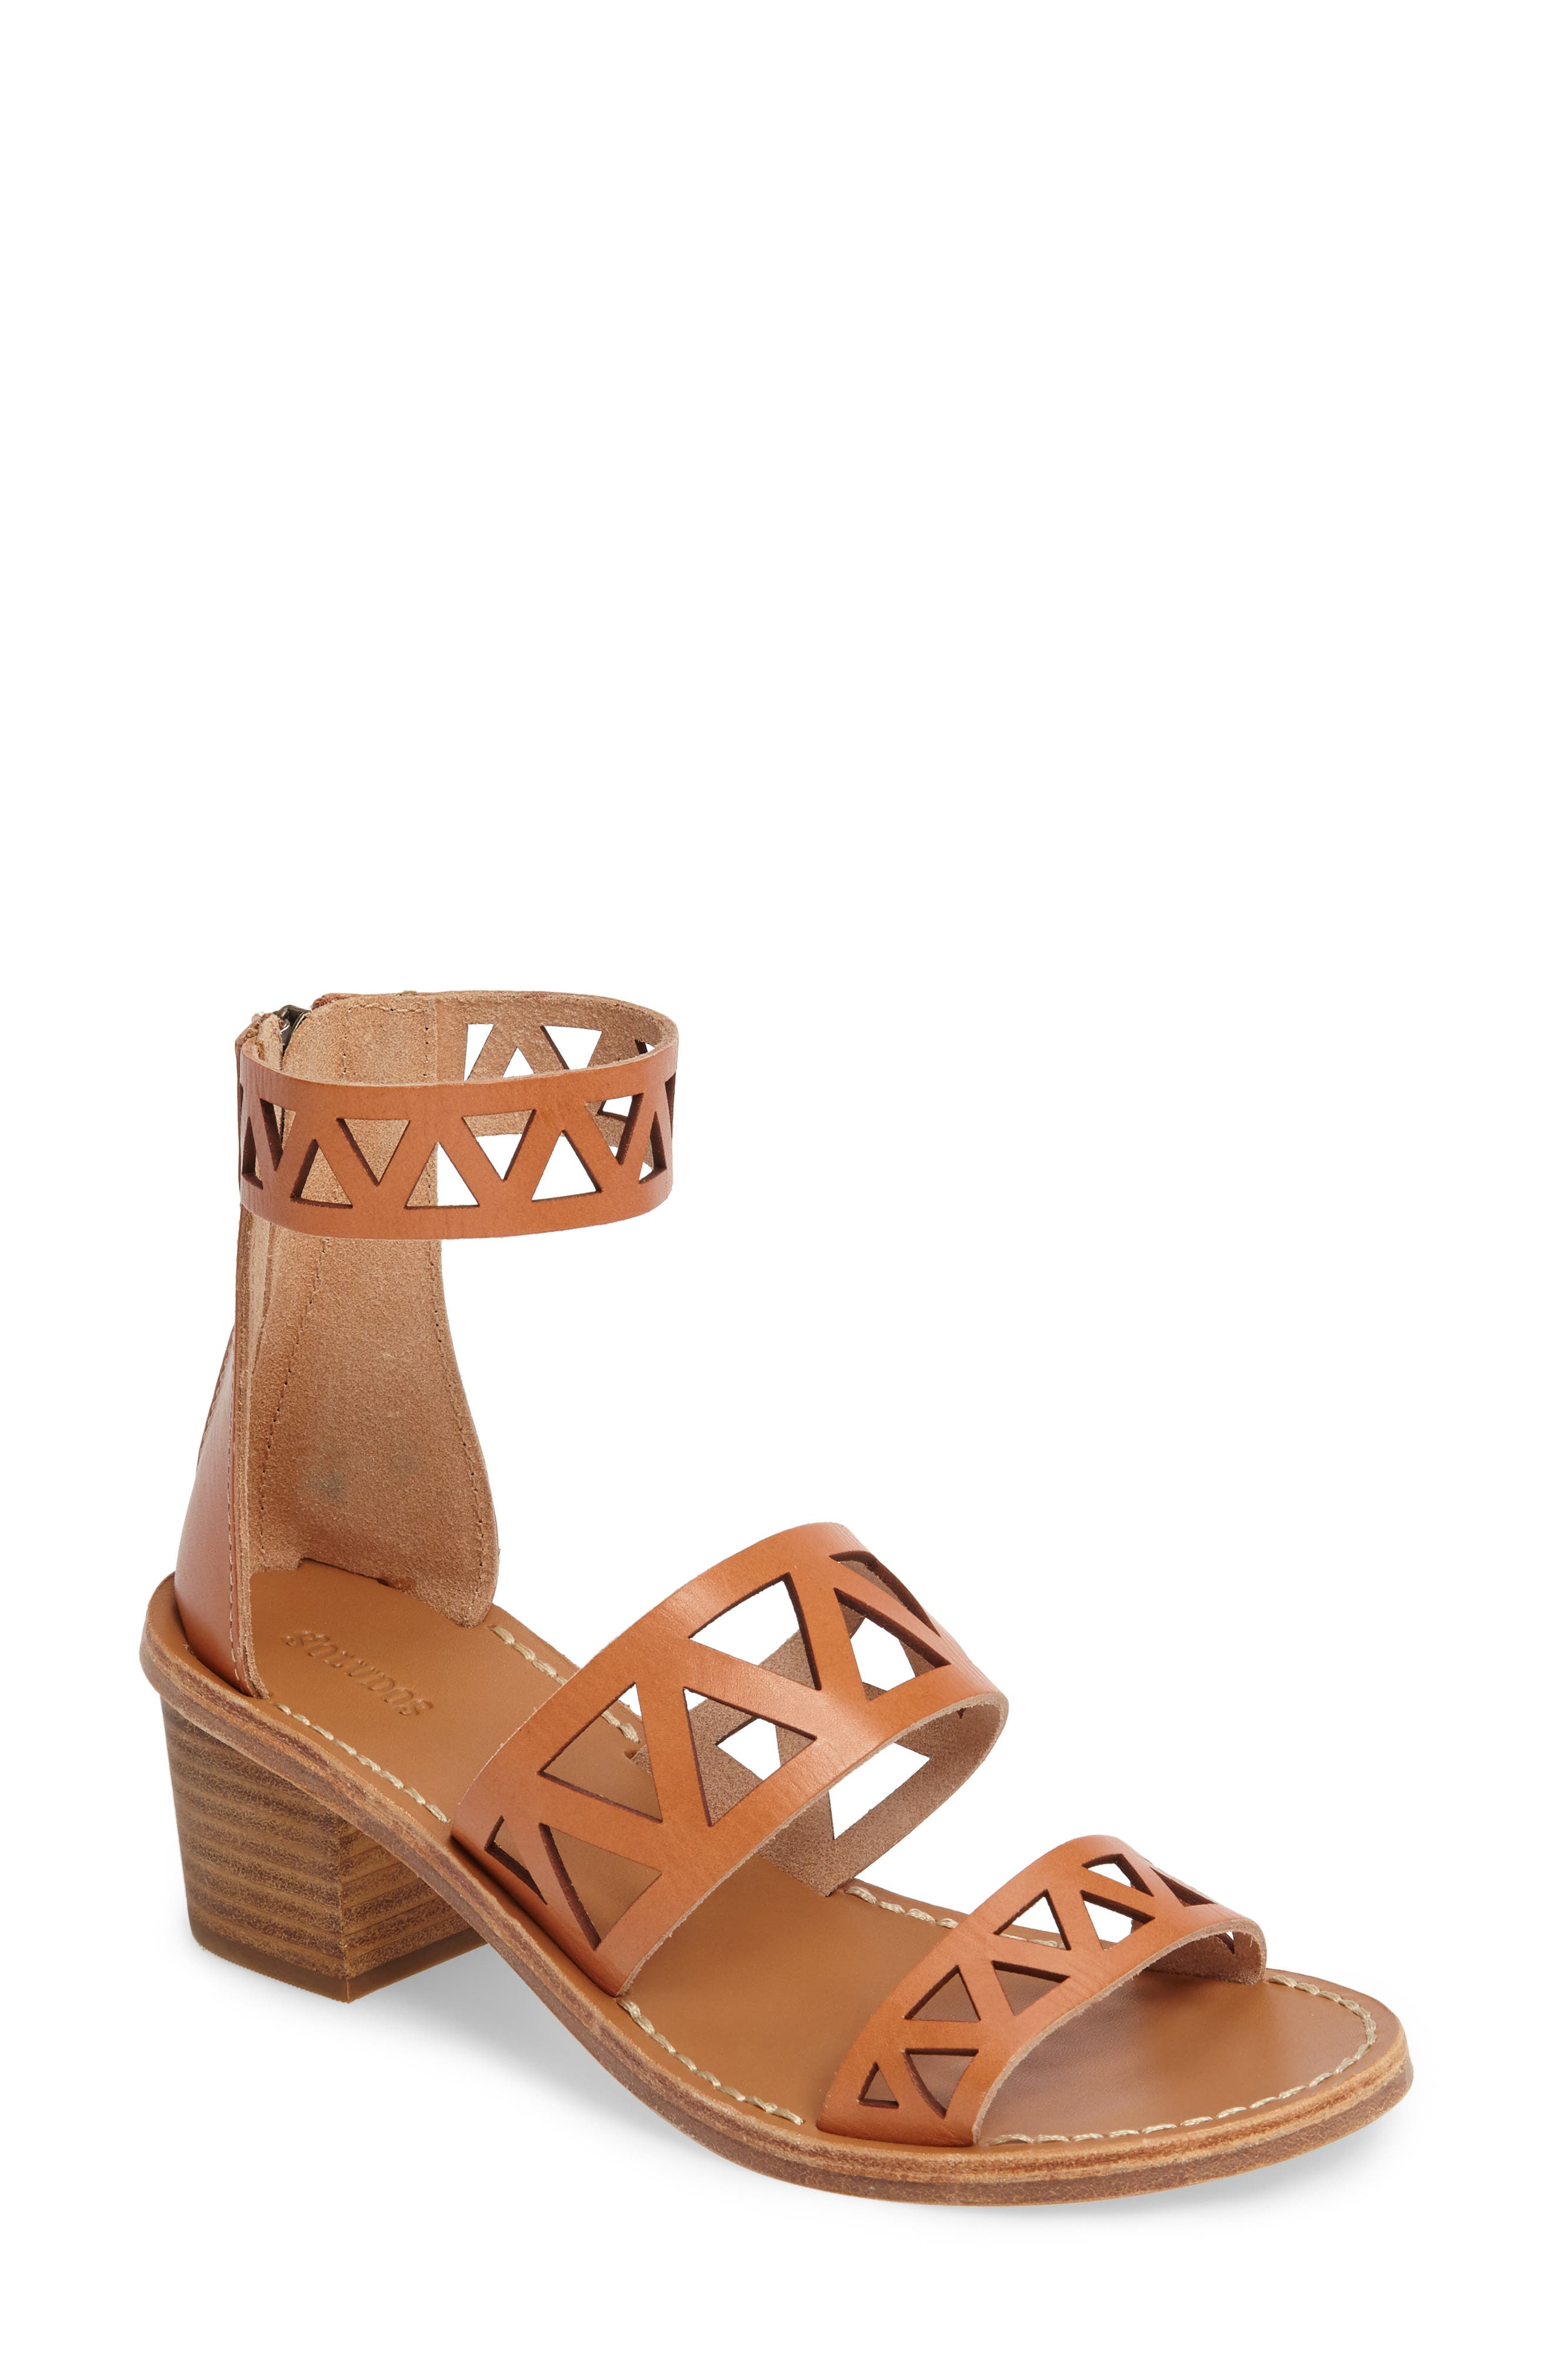 Perforated Ankle Strap Sandal,                             Main thumbnail 1, color,                             200